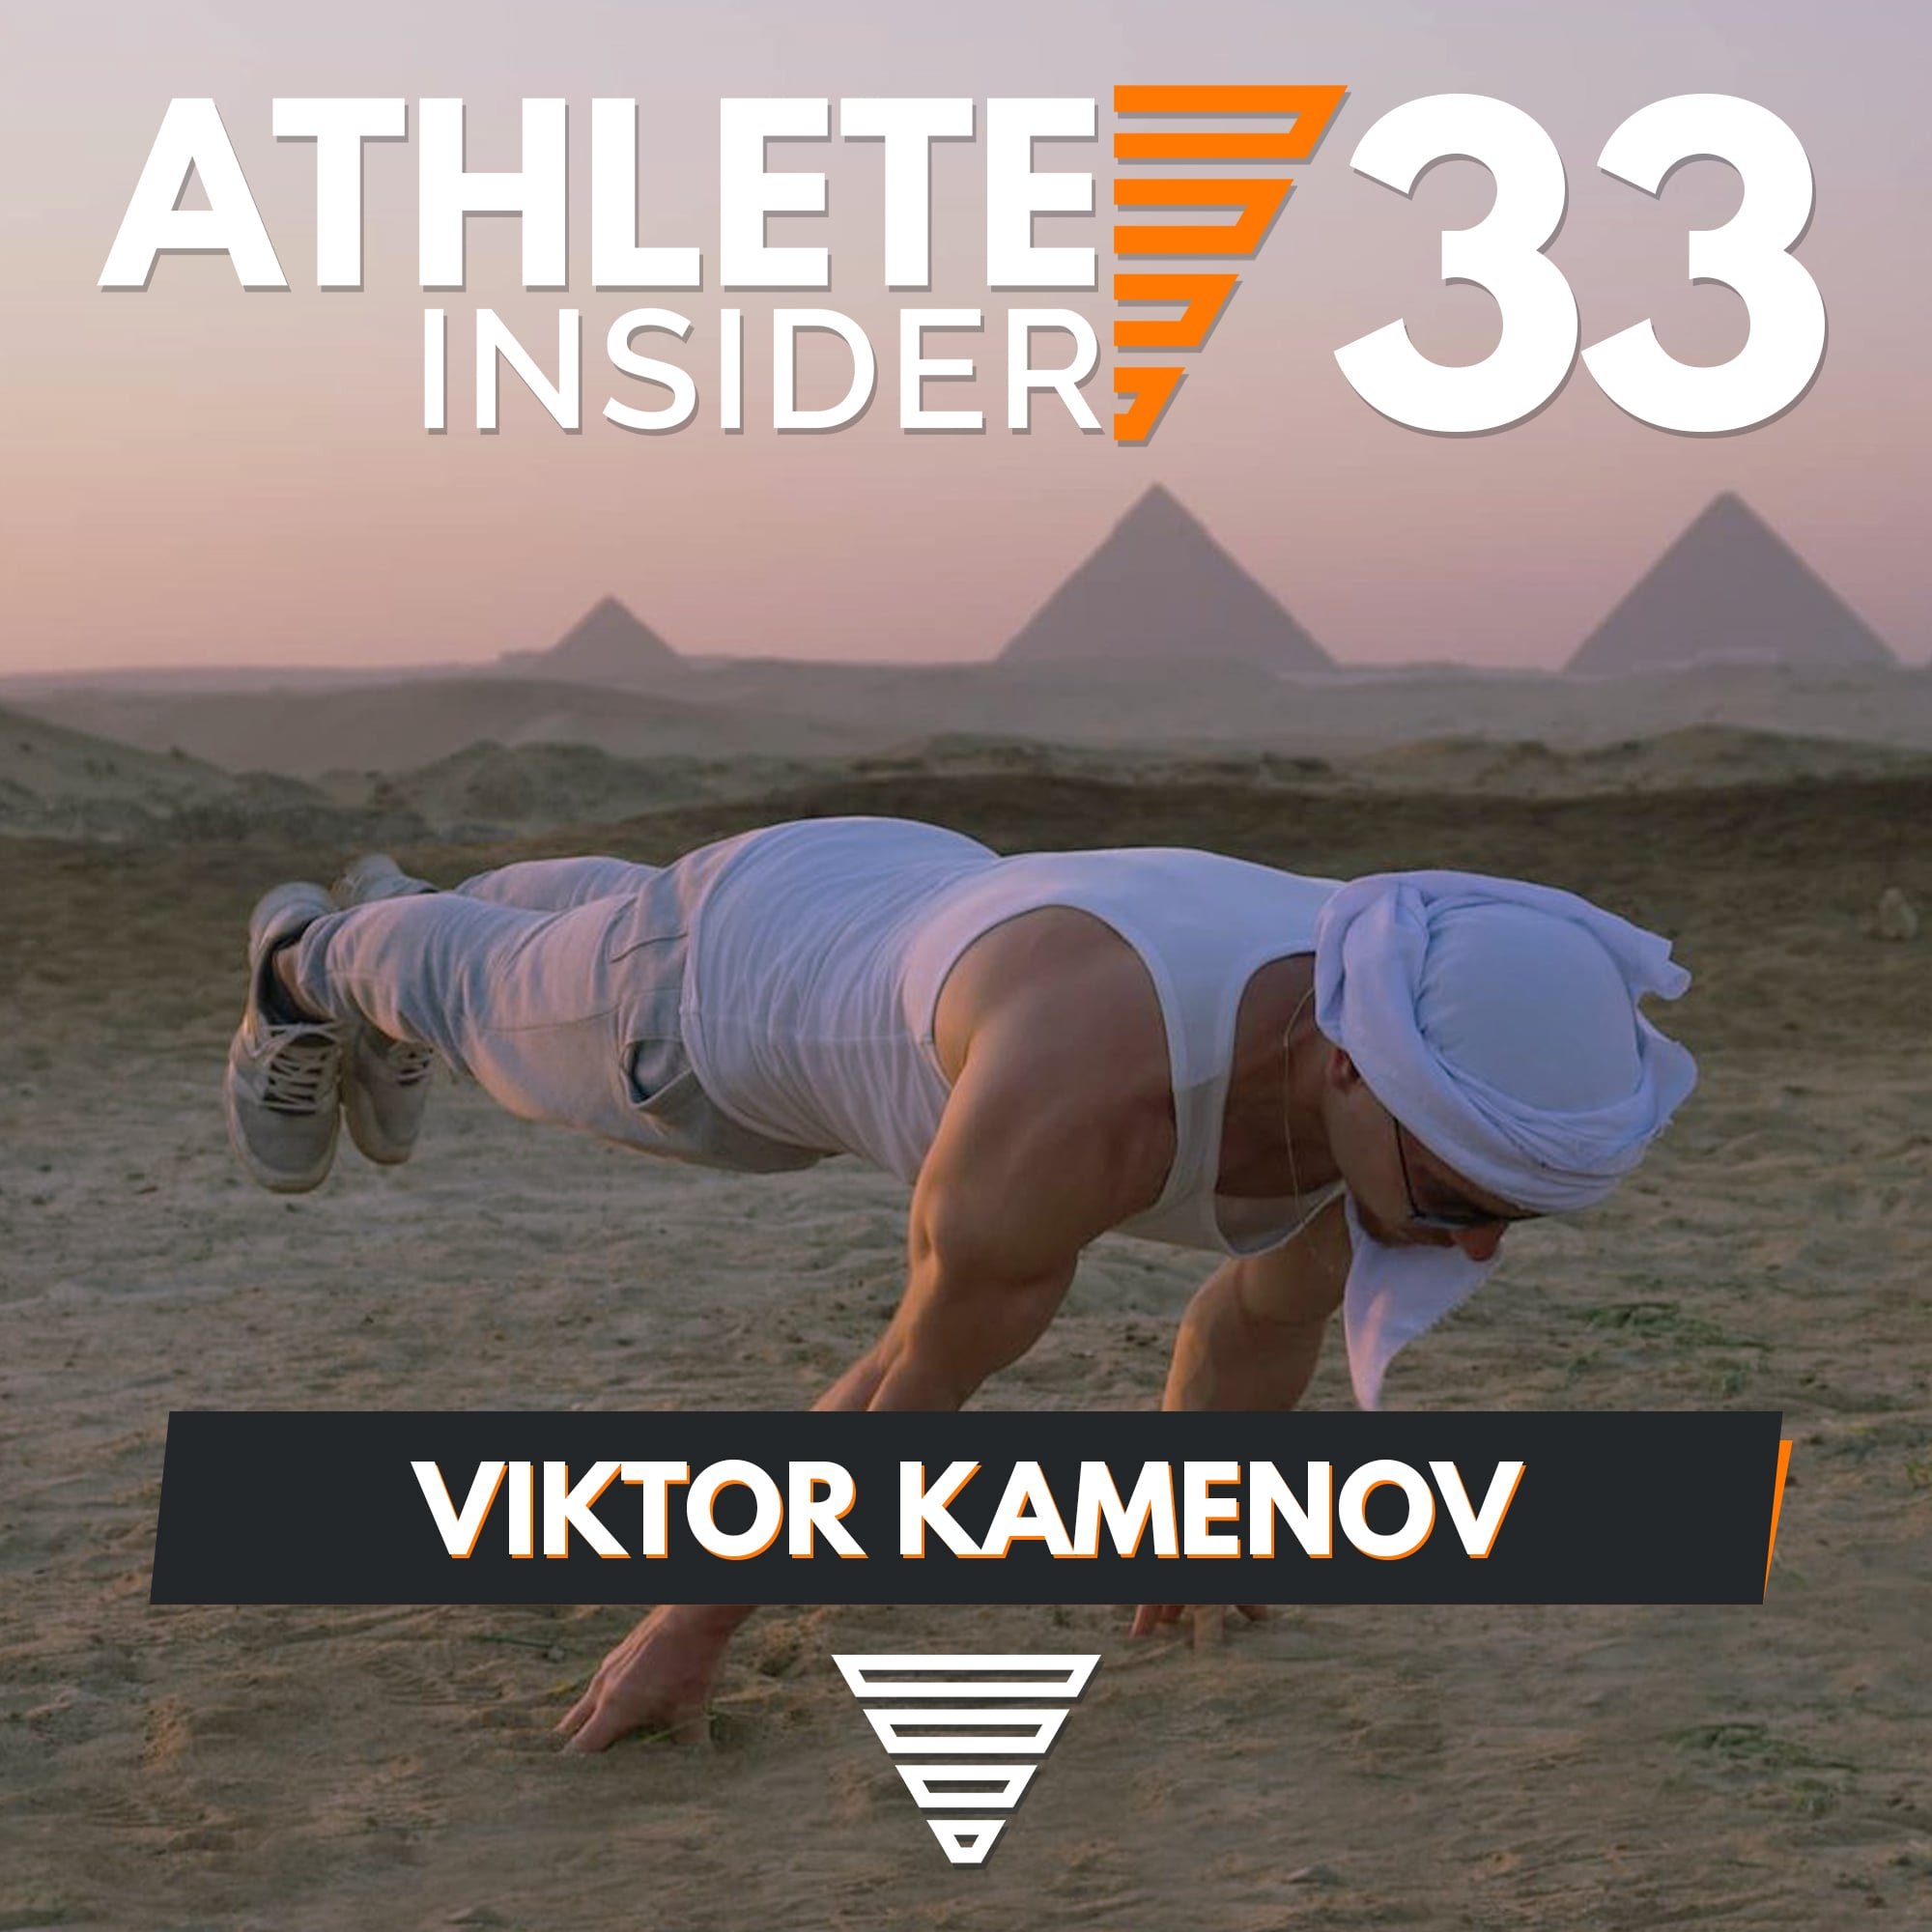 VIKTOR KAMENOV | His Planche Training & Advice  | Interview | The Athlete Insider Podcast #33